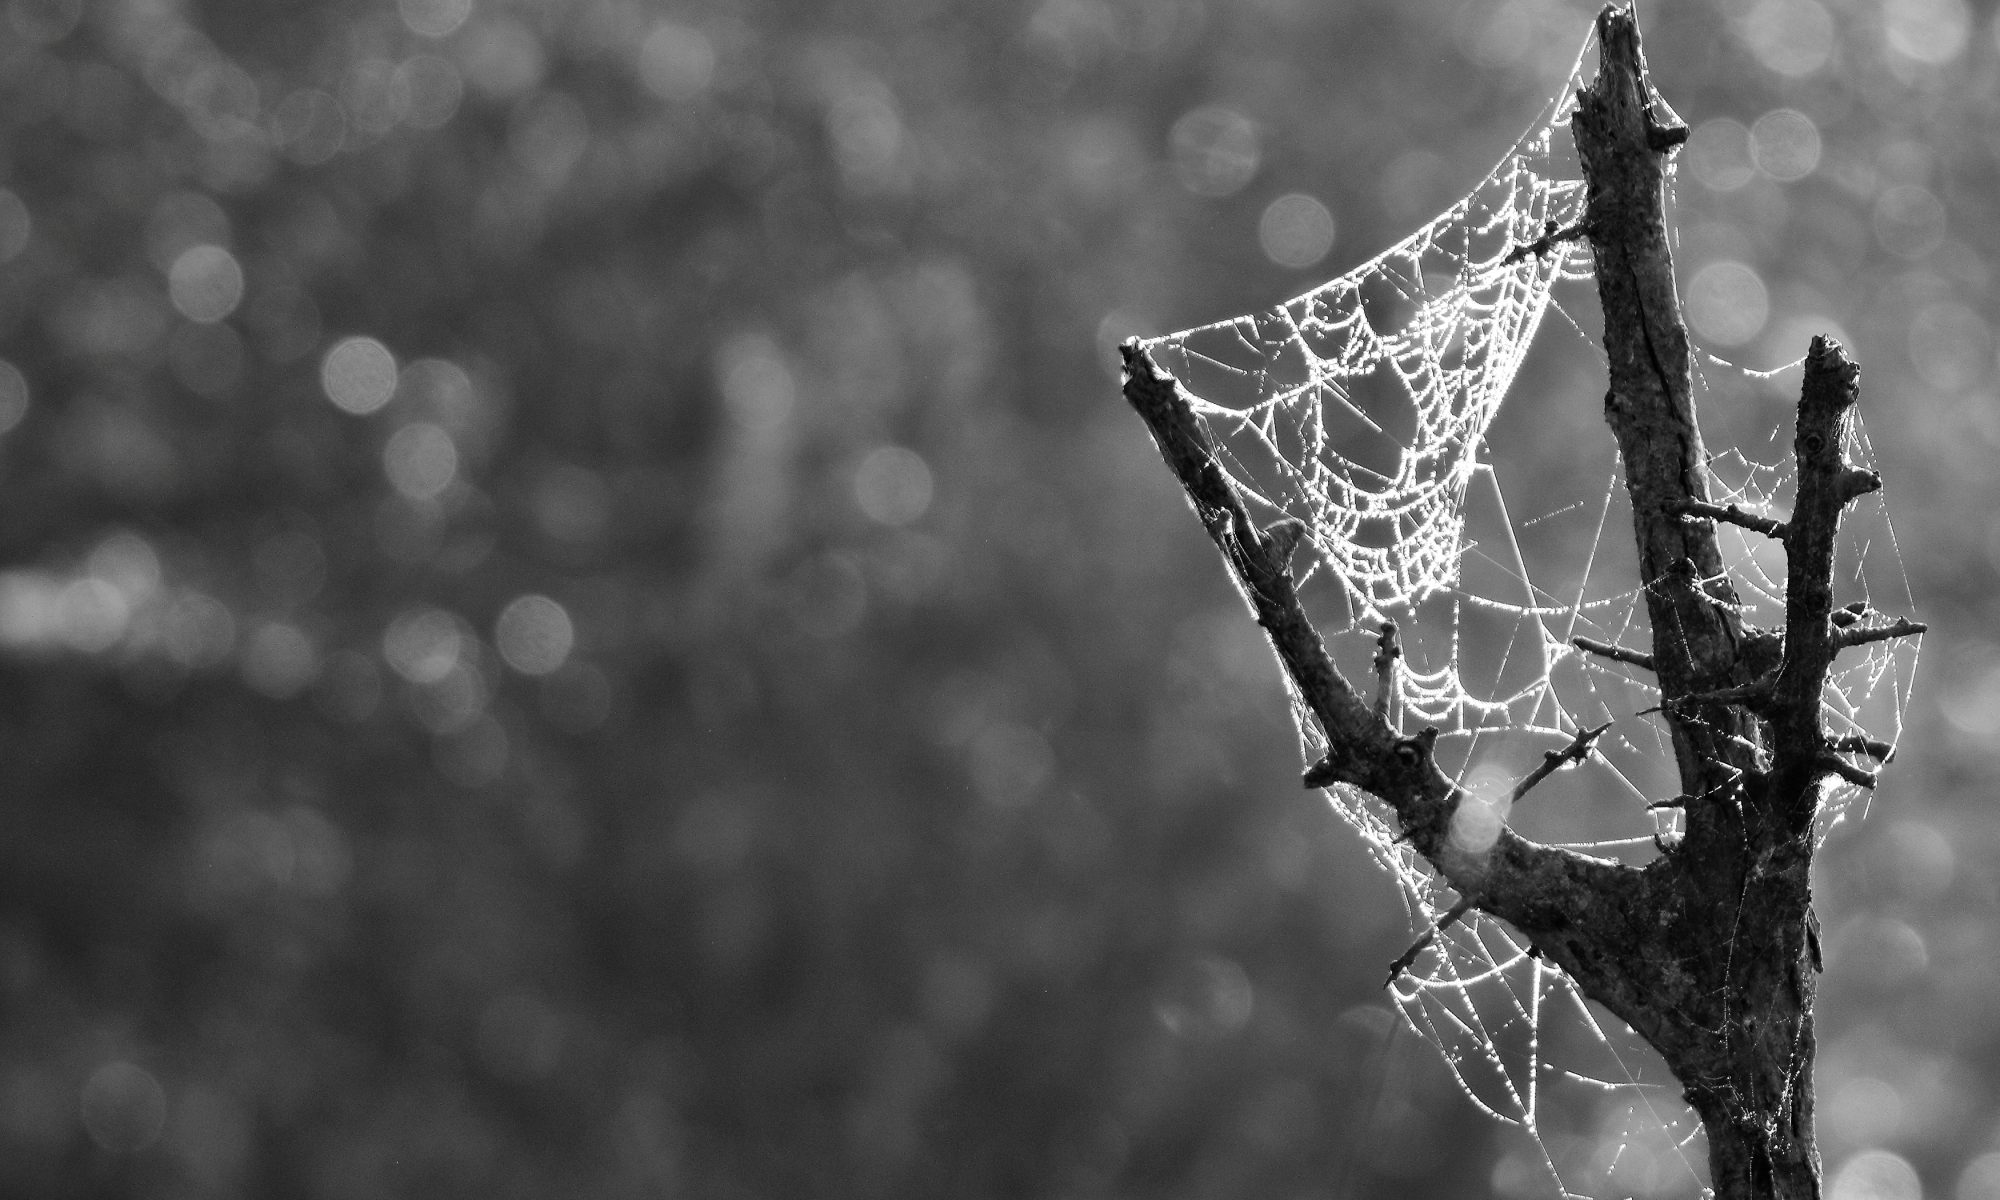 cobwebs By Airwolfhound [CC BY-SA 2.0 (https://creativecommons.org/licenses/by-sa/2.0)], via Wikimedia Commons